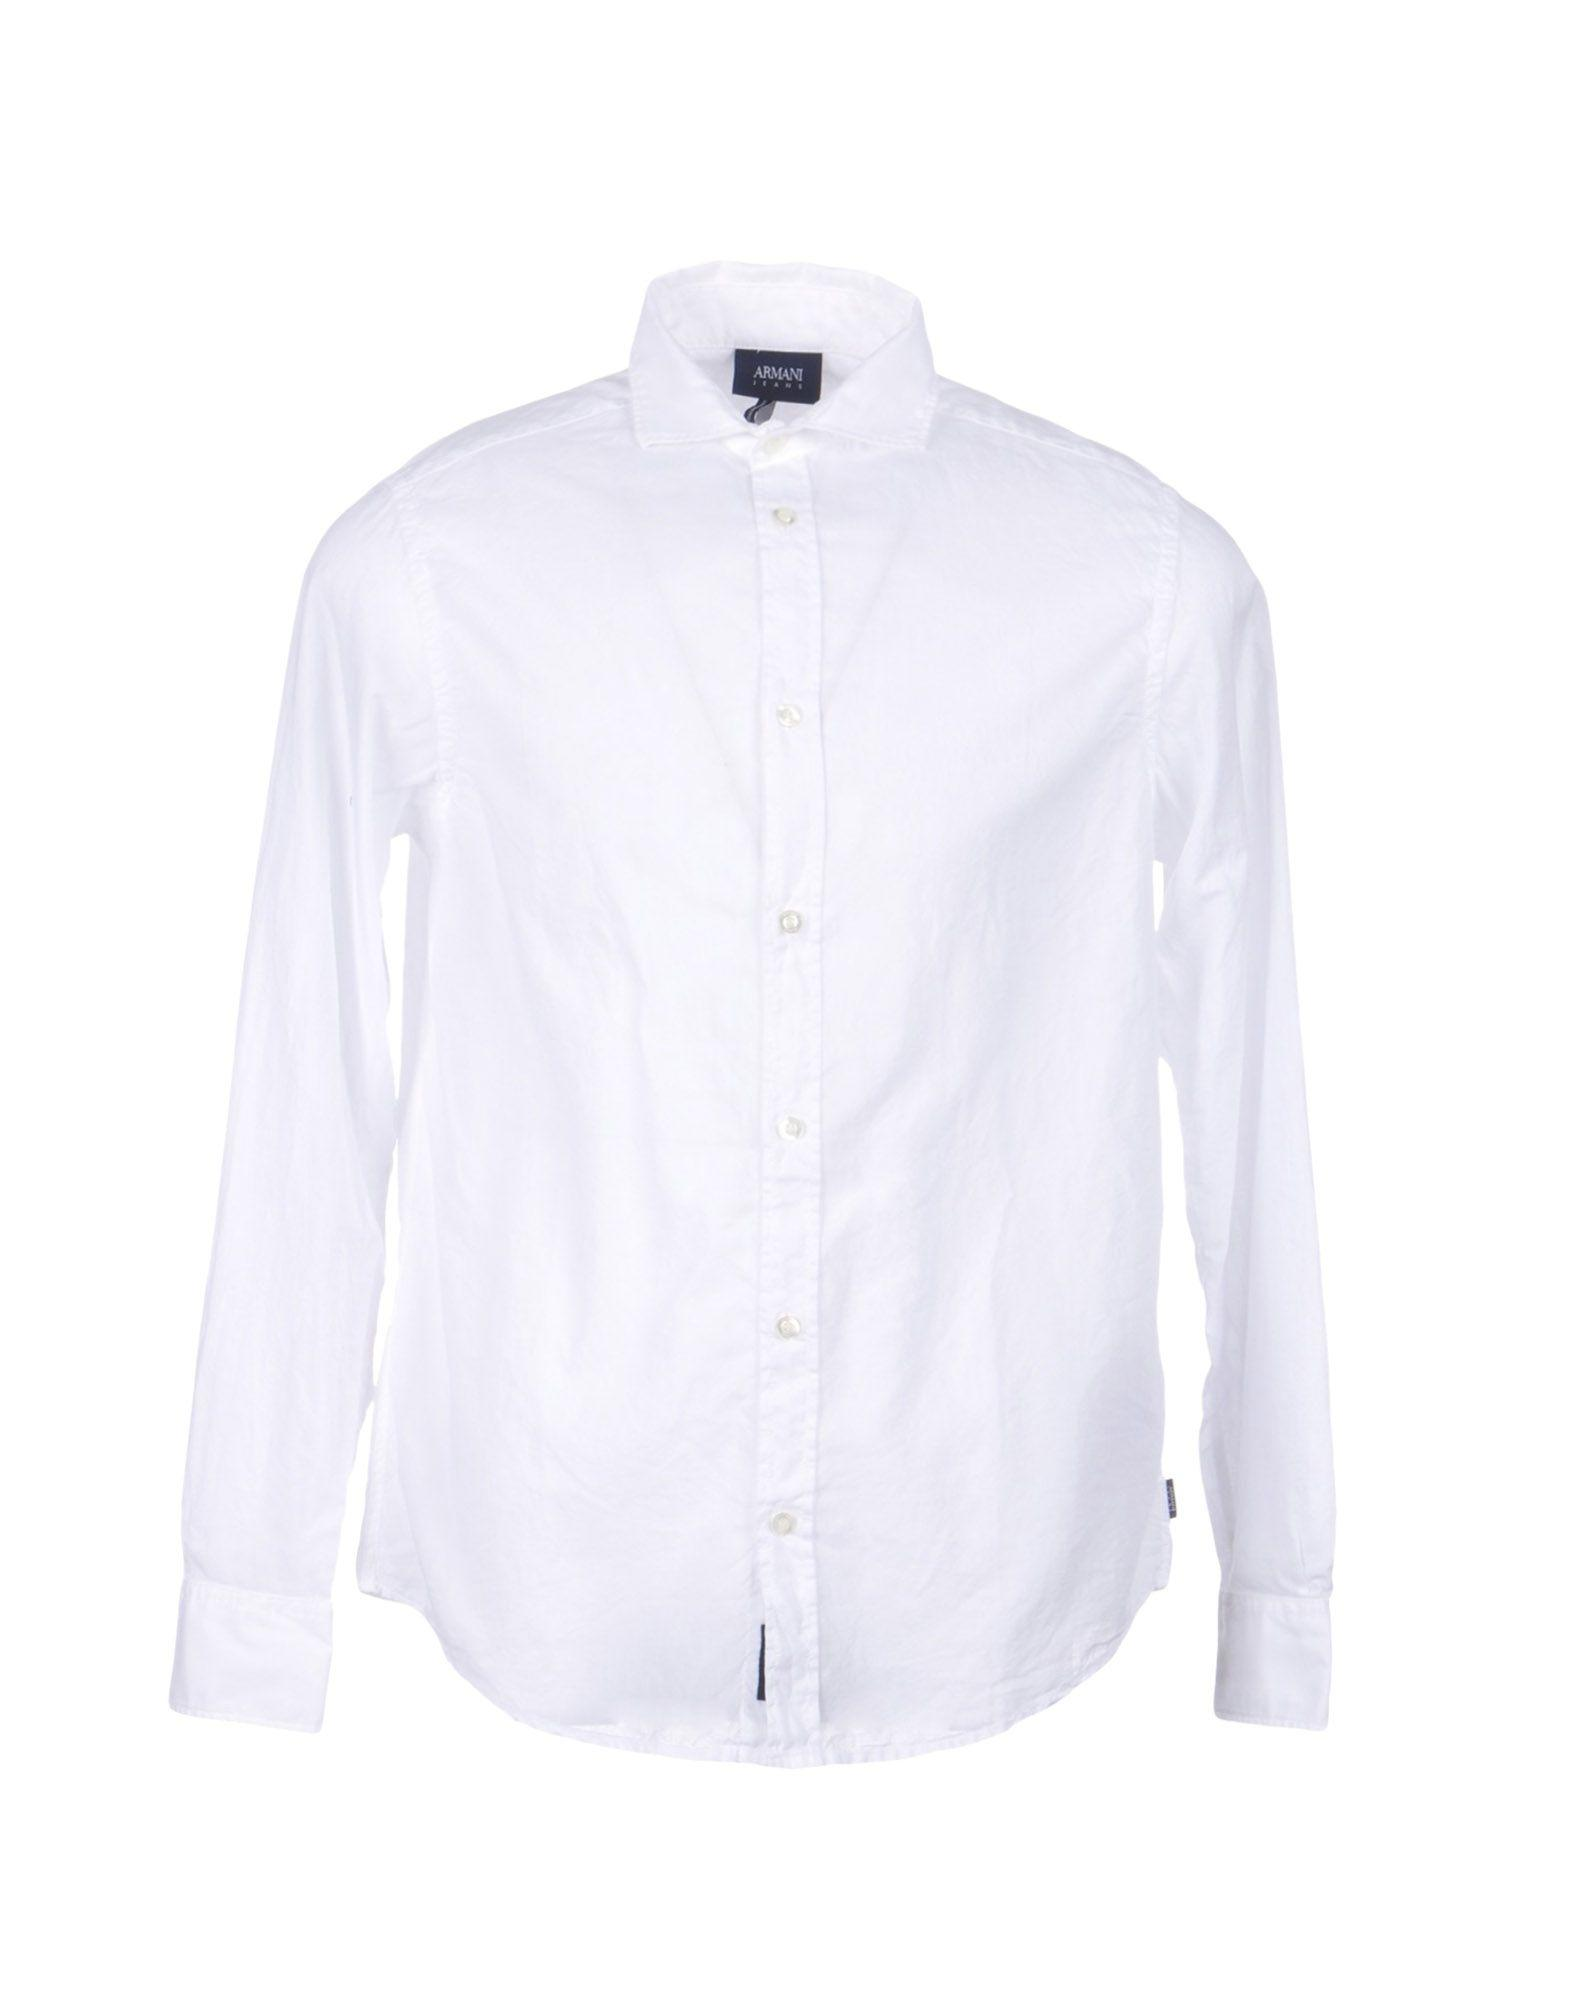 Armani Jeans Solid Color Shirt In White